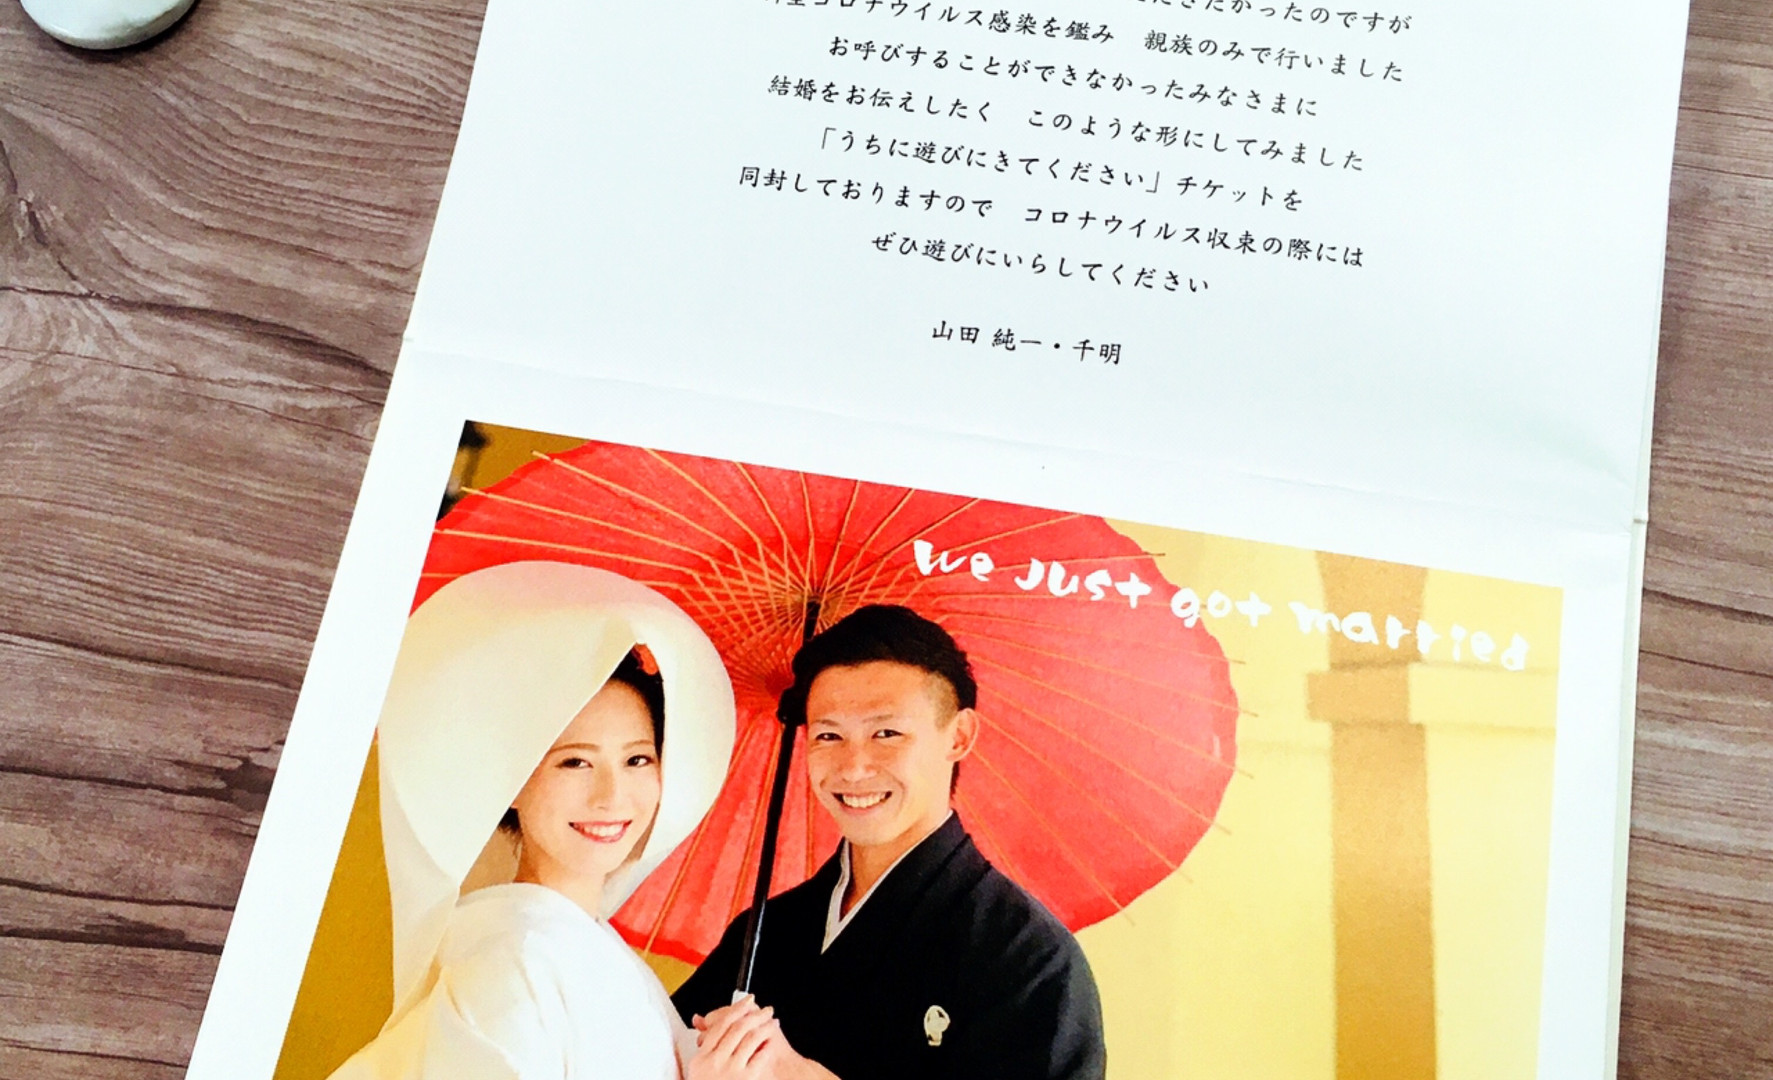 Just married デザイン9-A-4.jpg